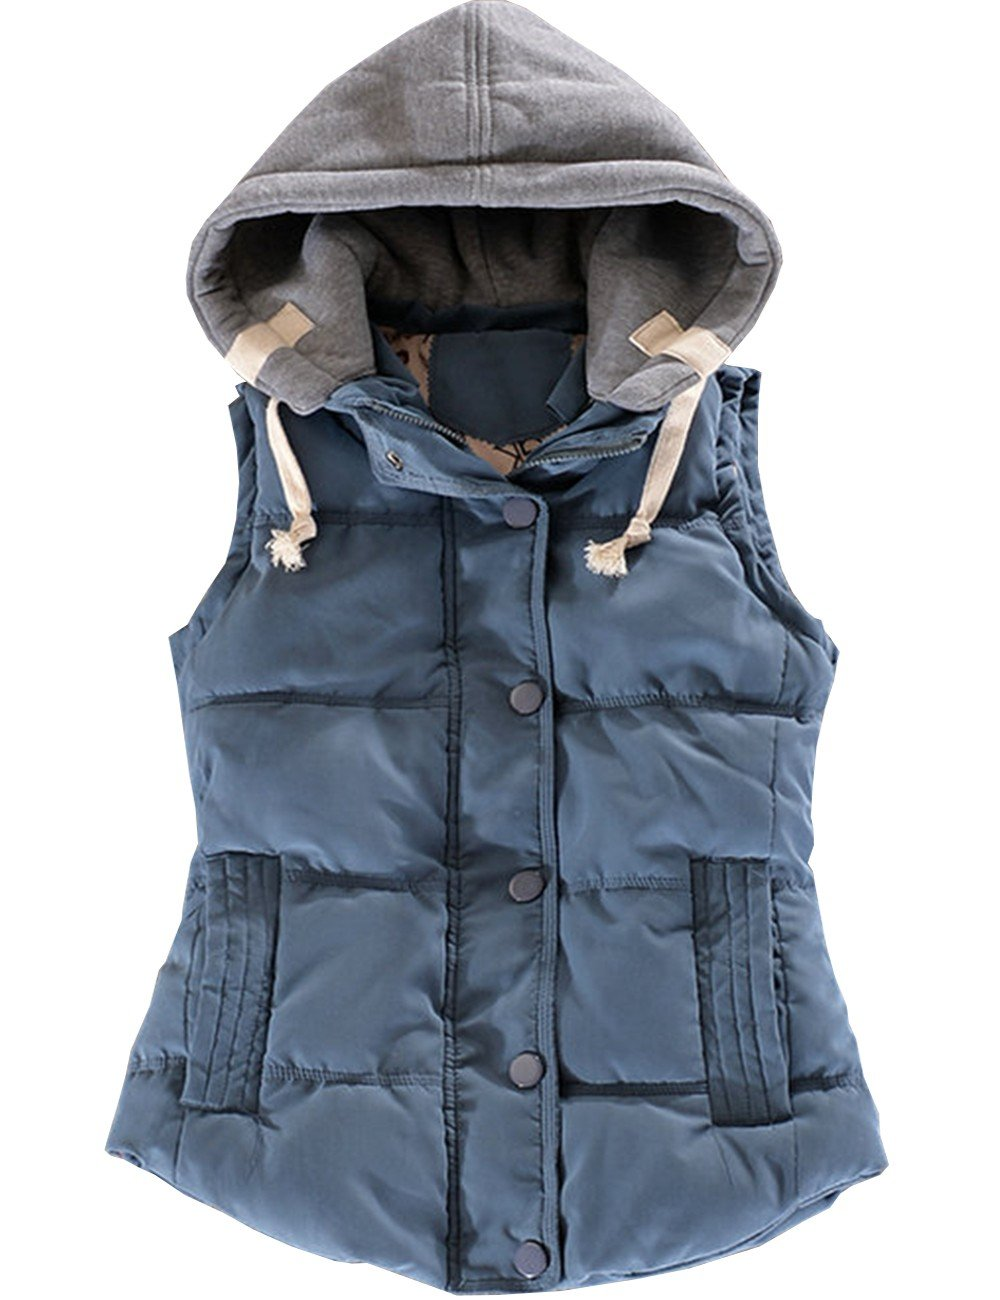 EMMA Women's Quilted Button Removable Hood Padded Gilet Casual Warm Winter Autumn Vest Down Sleeveless Jacket Outwear Bodywarmer Coat